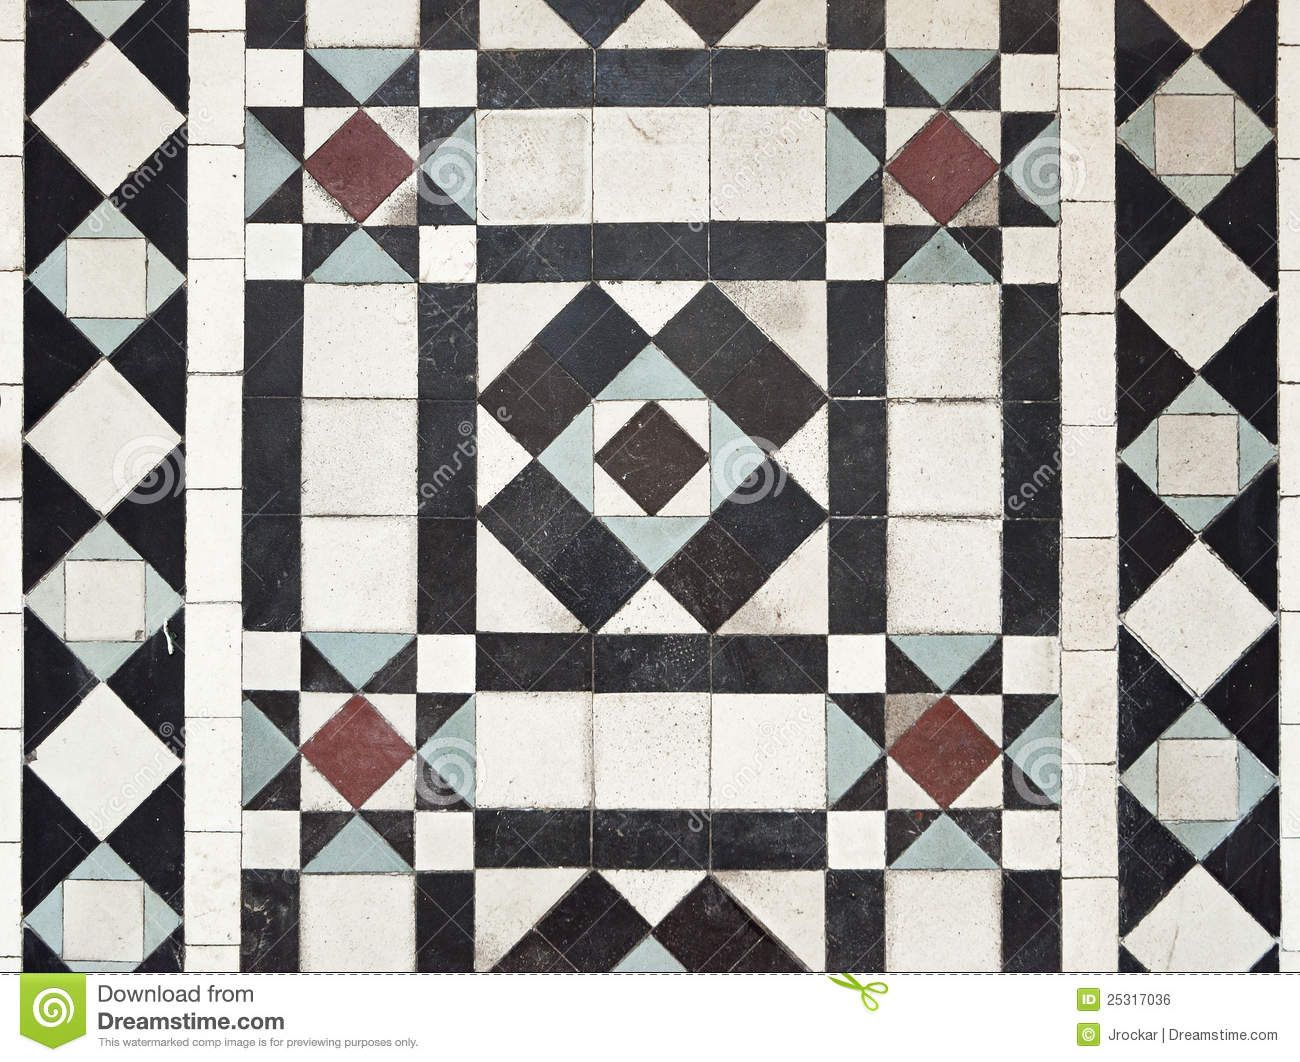 Image result for original style victorian floor tiles hallway old floor tiles dont have to be a pain to clean maintain beautiful period features in your home with these tips on how to clean victorian floor tiles dailygadgetfo Image collections